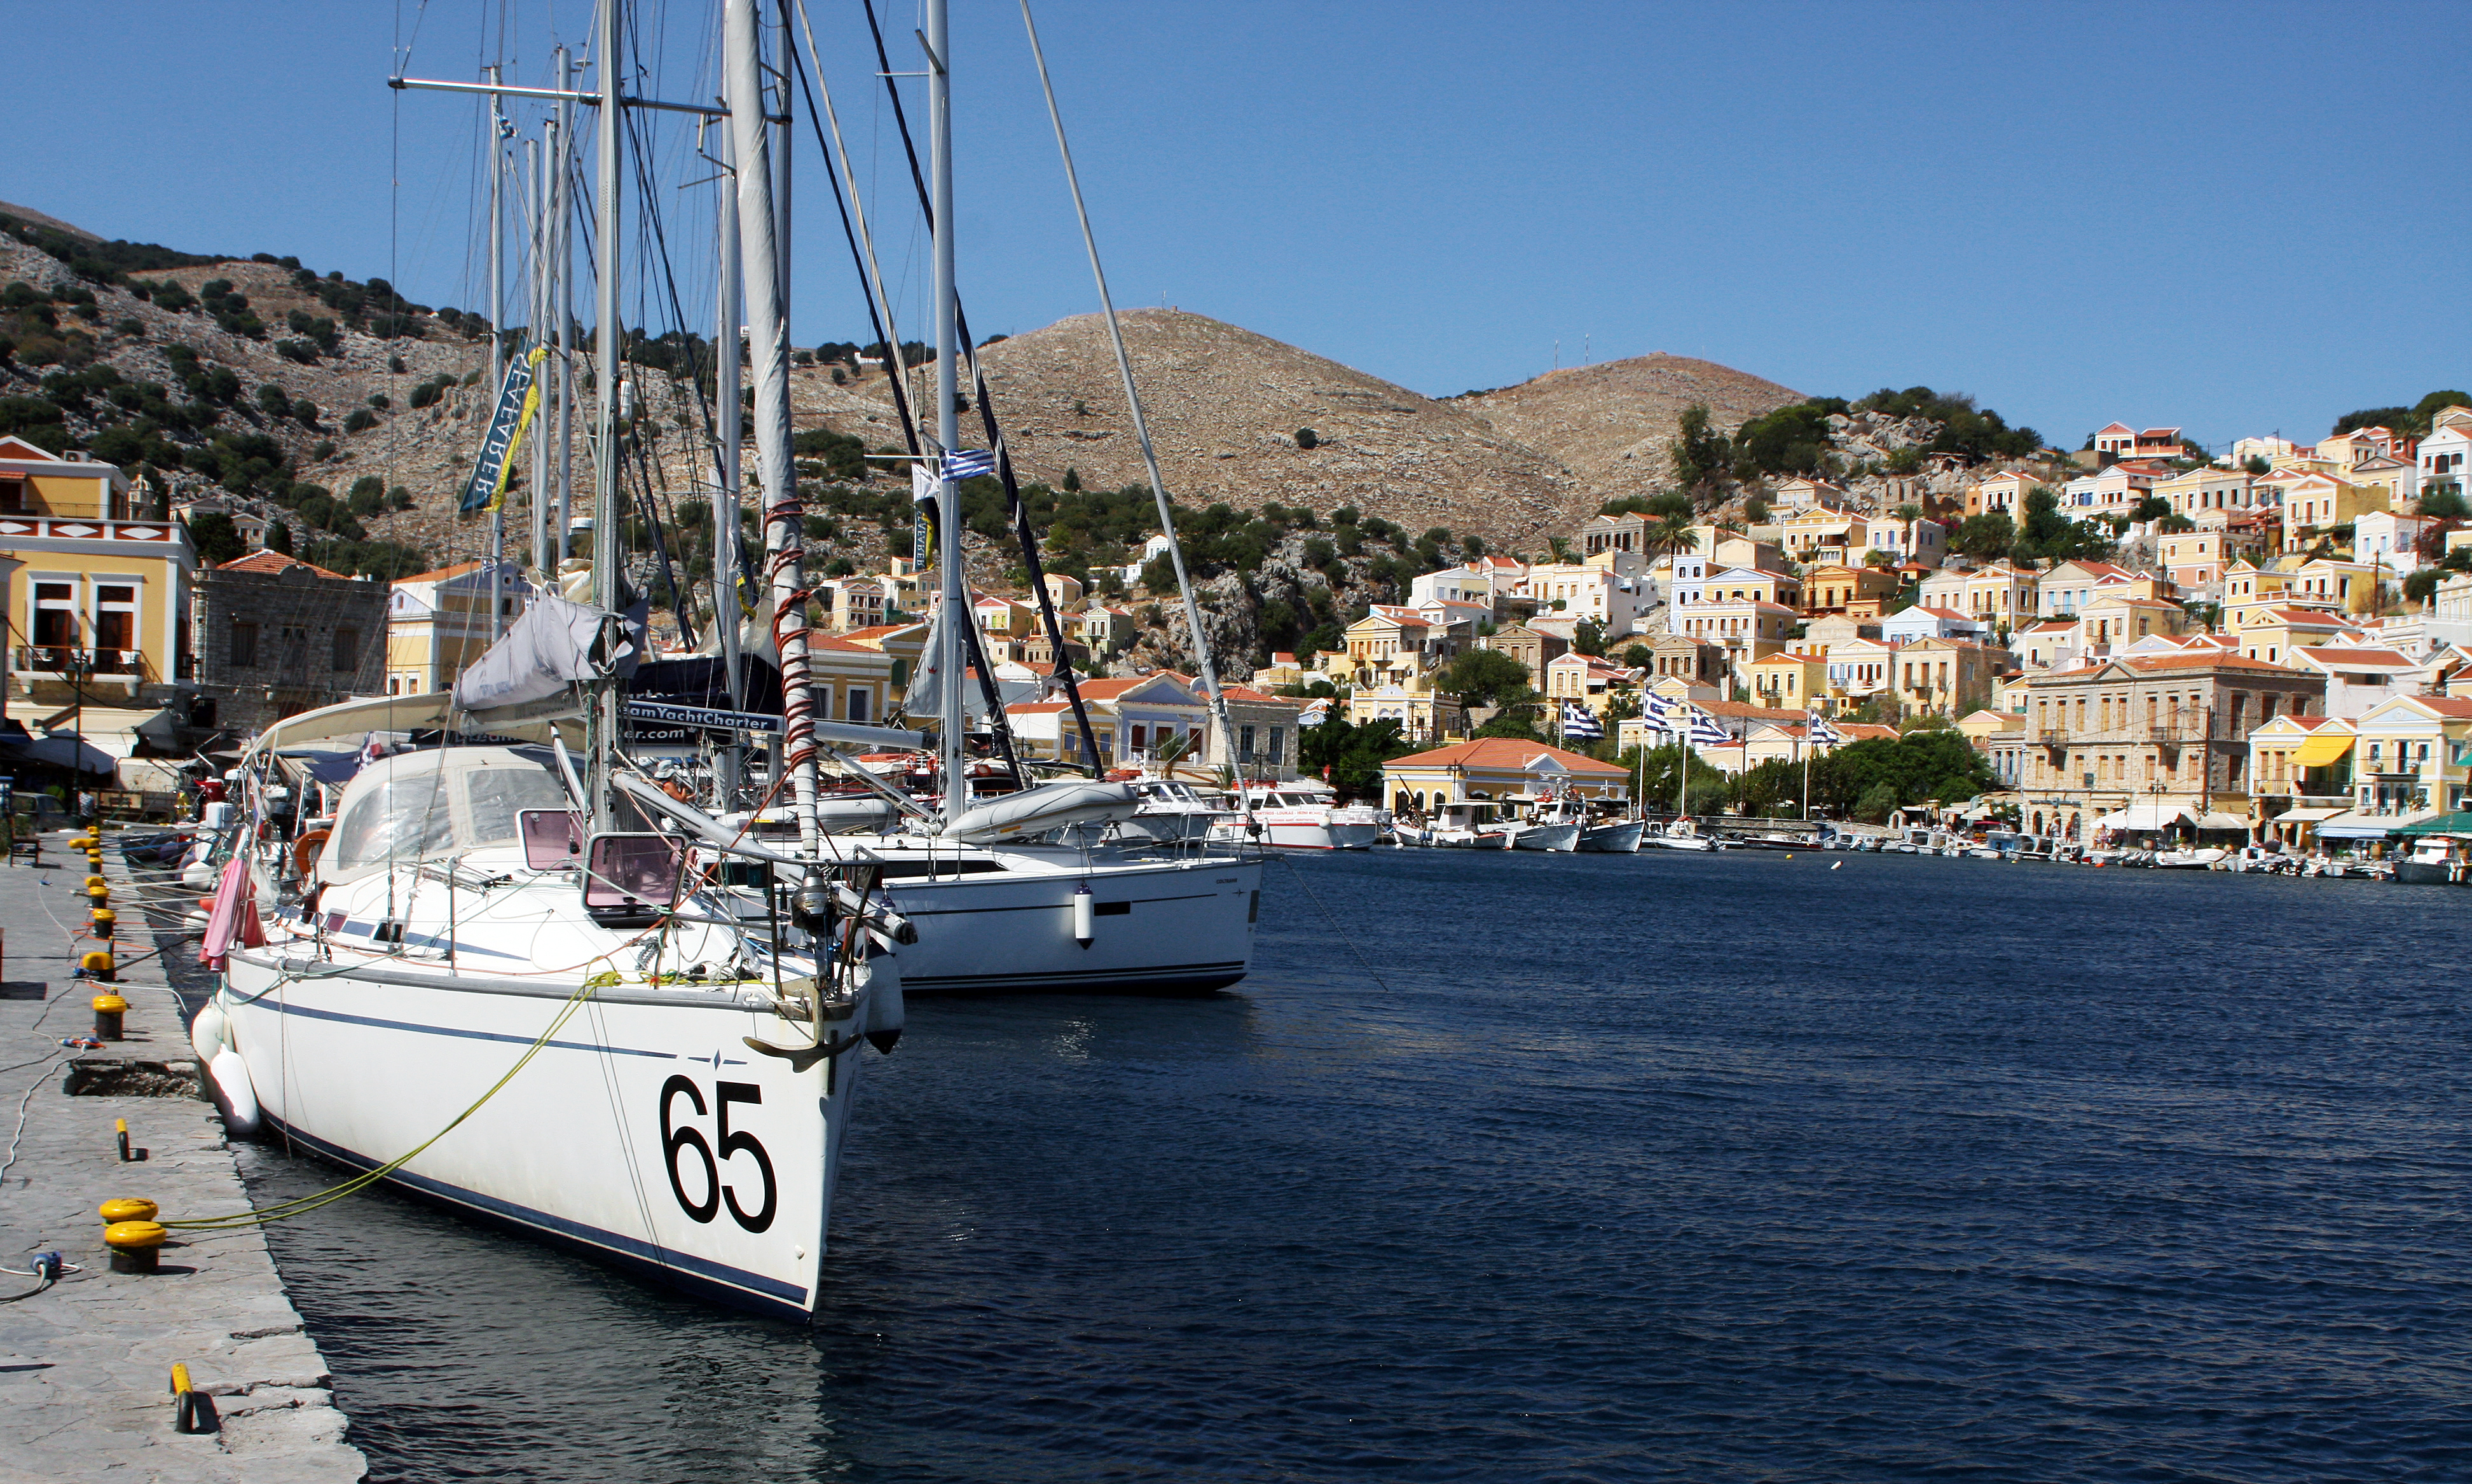 The harbour at symi. photo